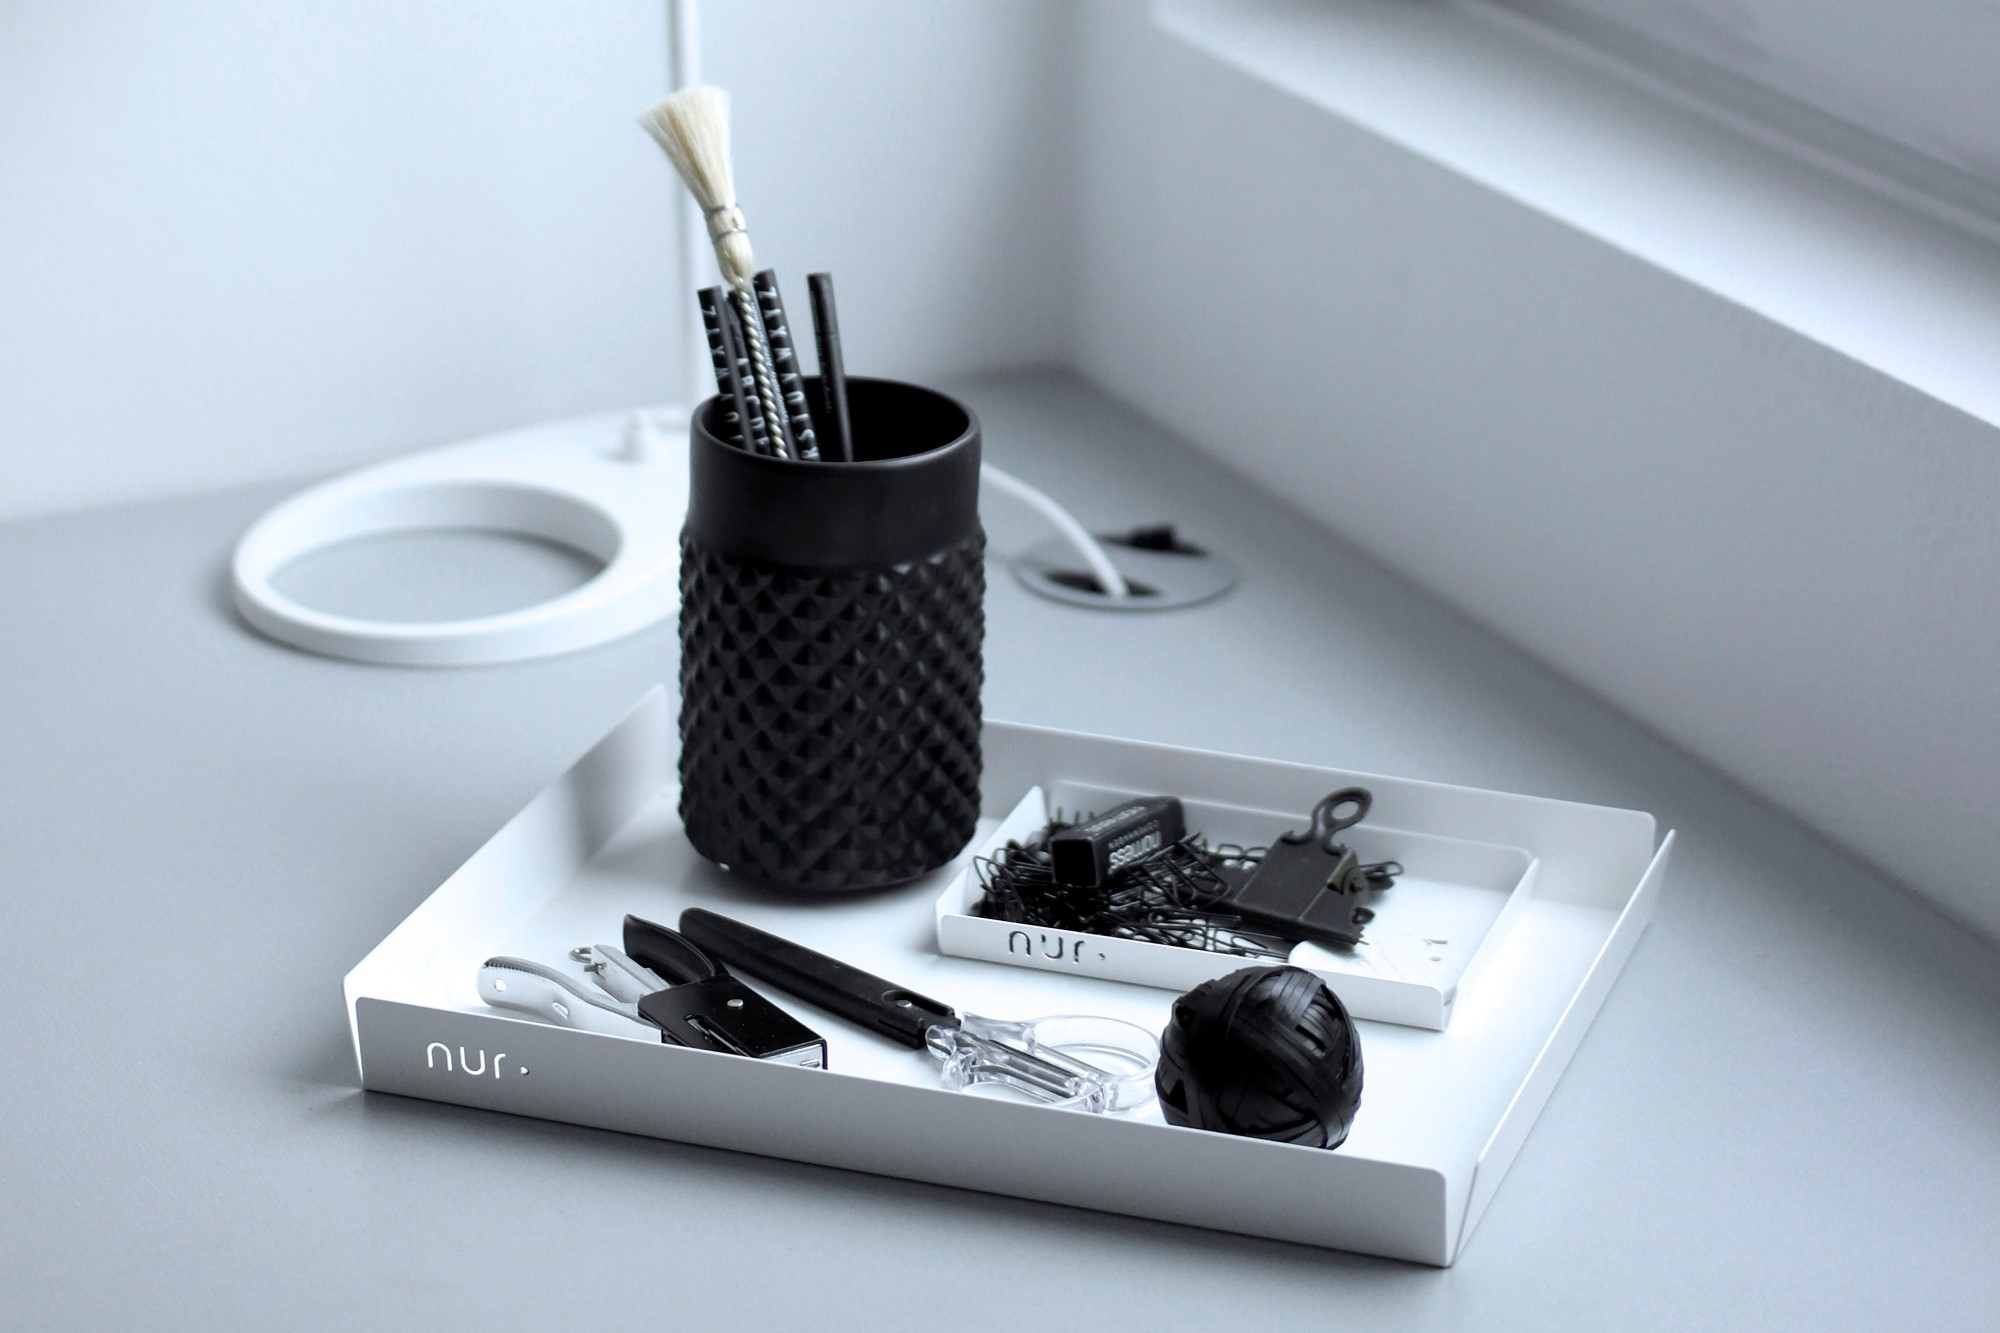 Nur Design white tray for organizing